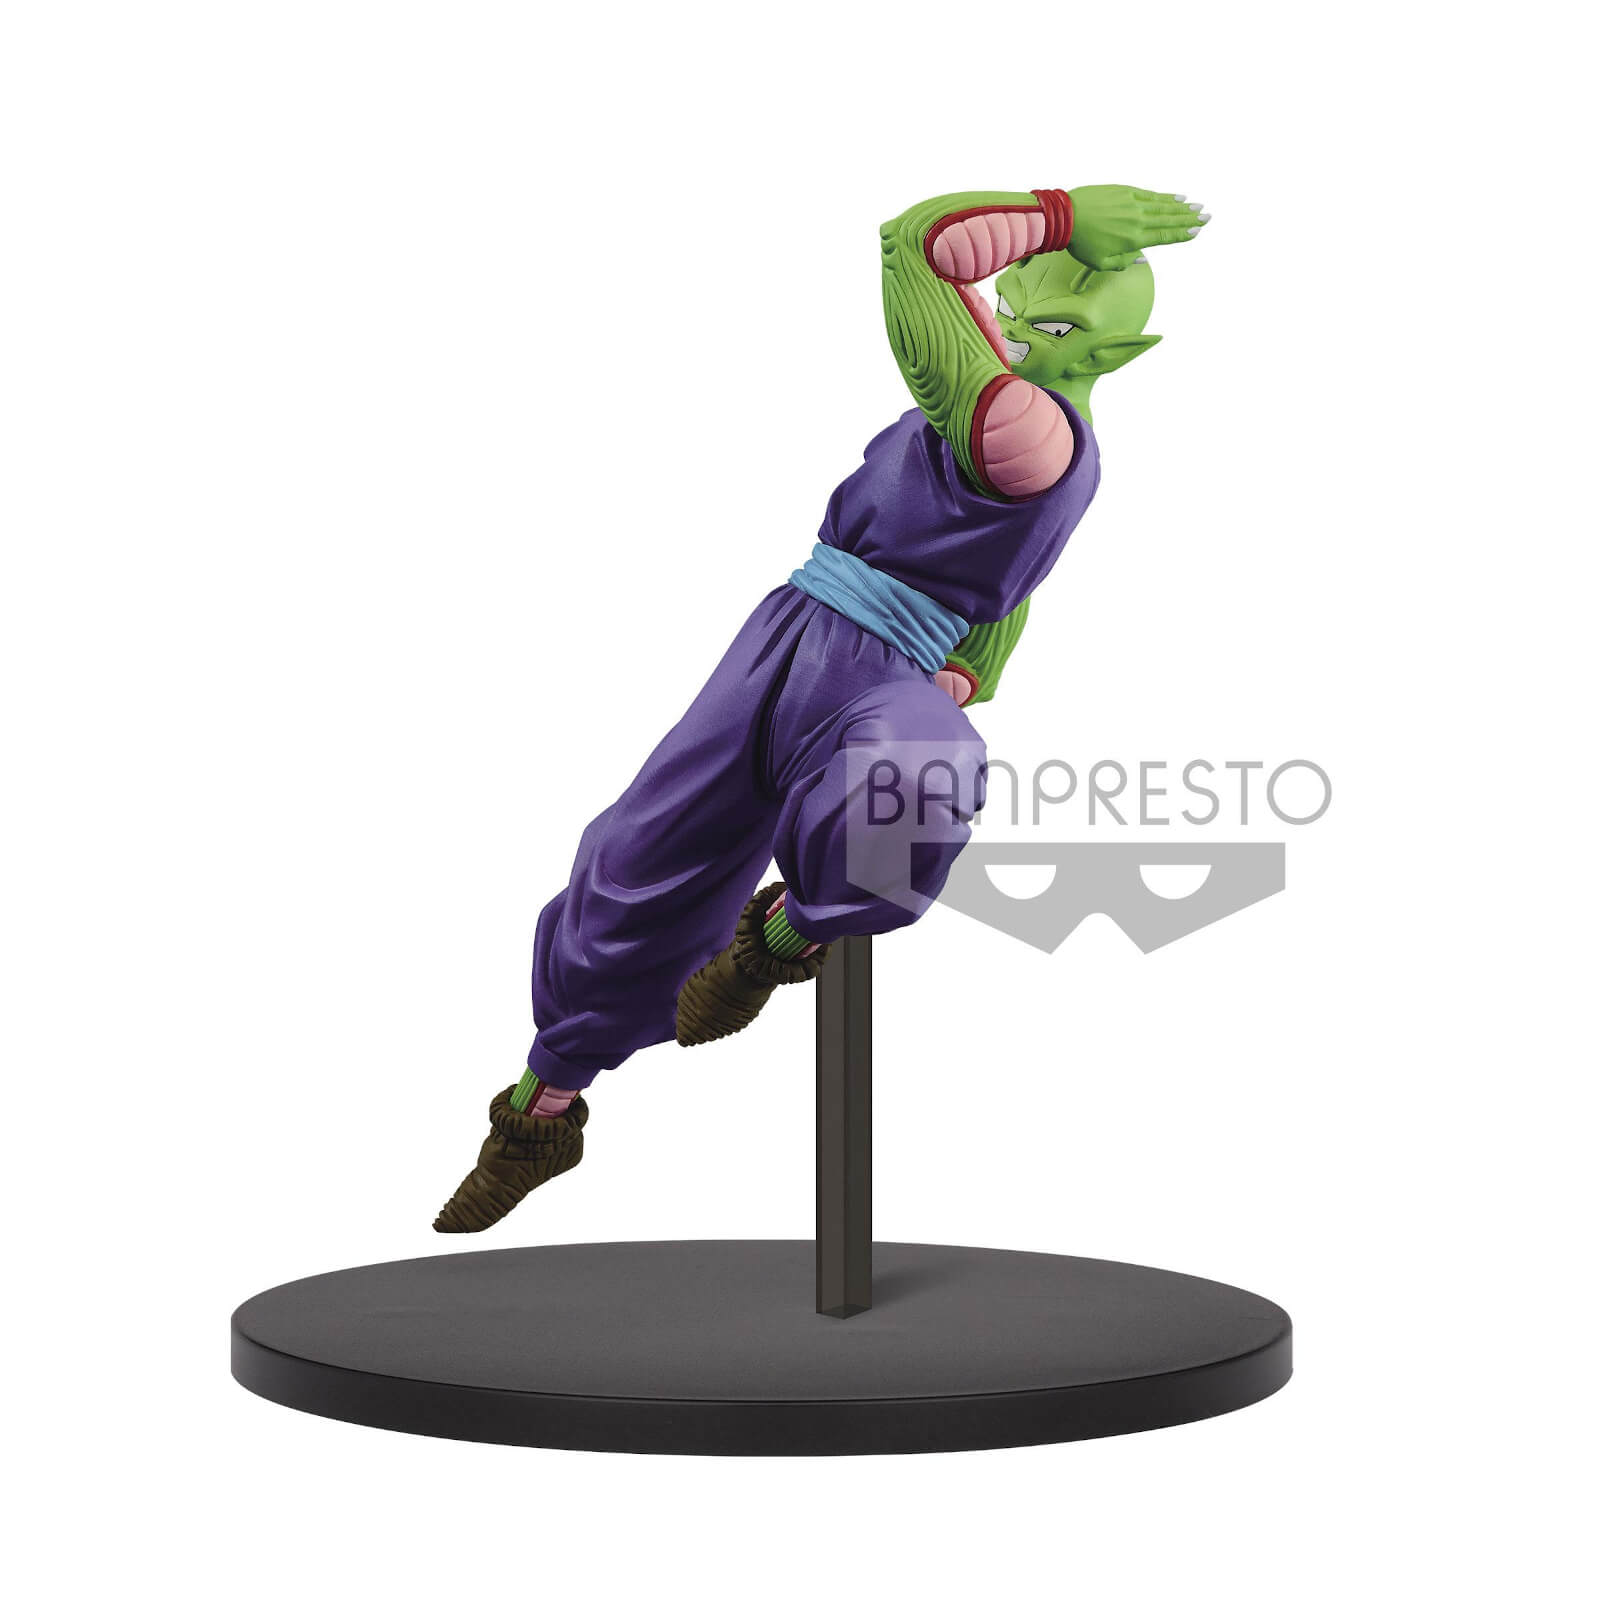 Image of Banpresto Dragon Ball Super Piccolo Chosenshiretsuden Vol.7 Statue